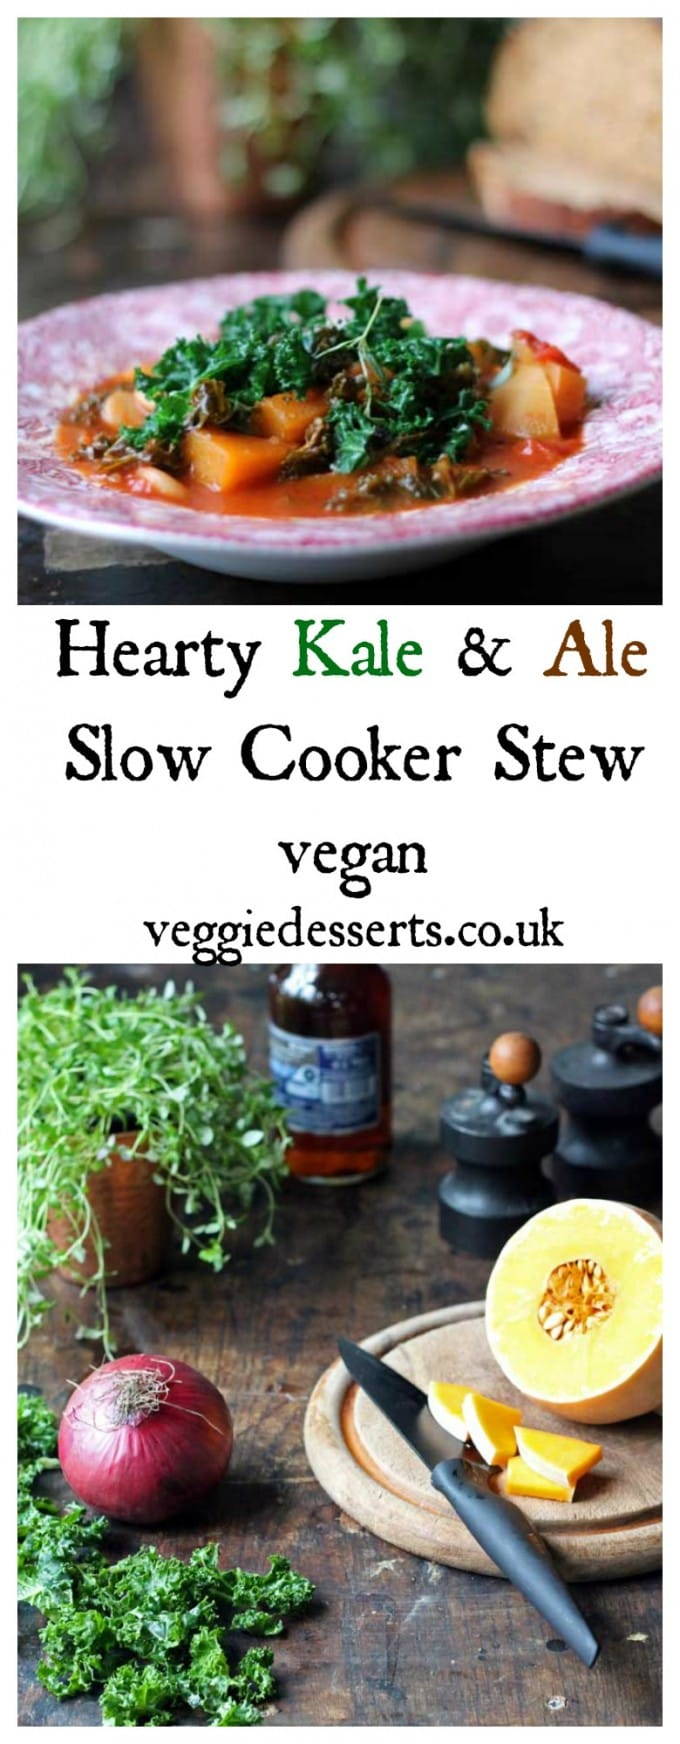 Kale and Ale Slow Cooker Stew is easy to make and full of flavour. It's a hearty vegan and gluten free stew that's packed with veggies. Just add the ingredients to the slow cooker and await a bowl of fragrant stew. #vegan #veganrecipe #slowcooker #veganslowcooker #recipe